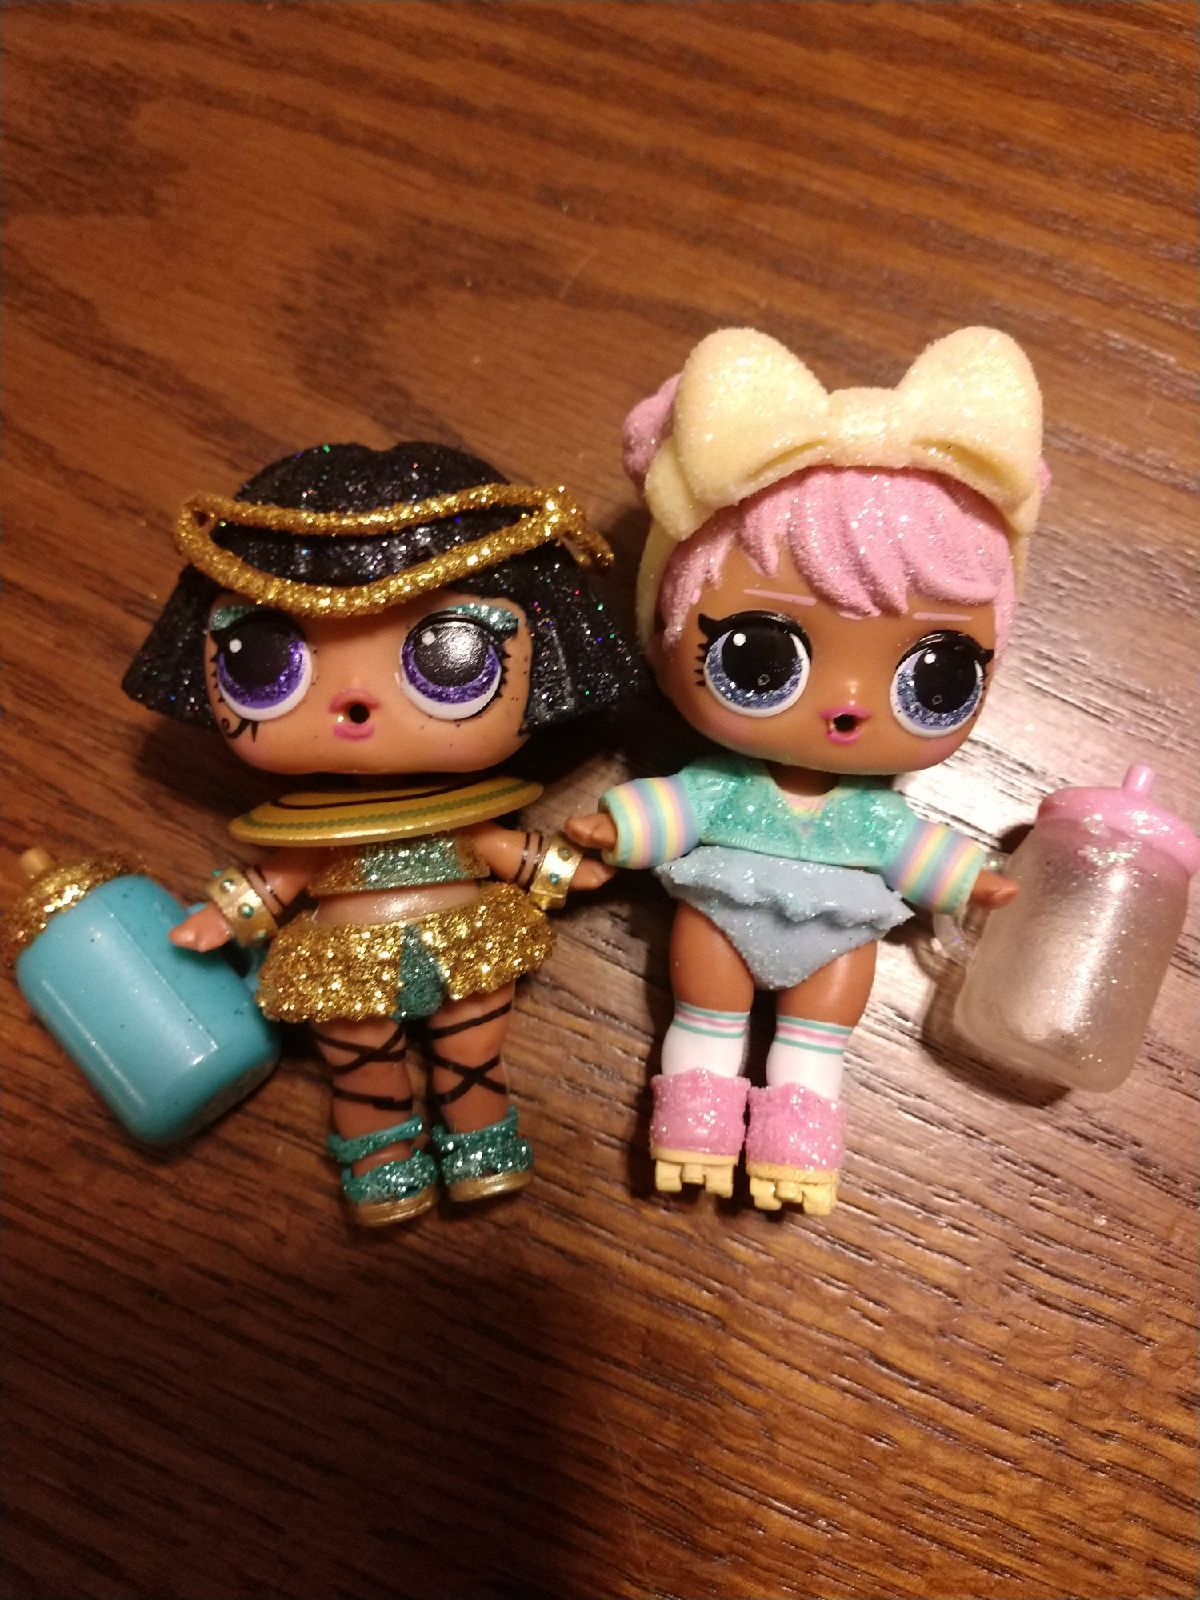 LOL Surprise Sleepover Snuggle Babe Holiday Bling Sparkle Series Doll Toys Gift